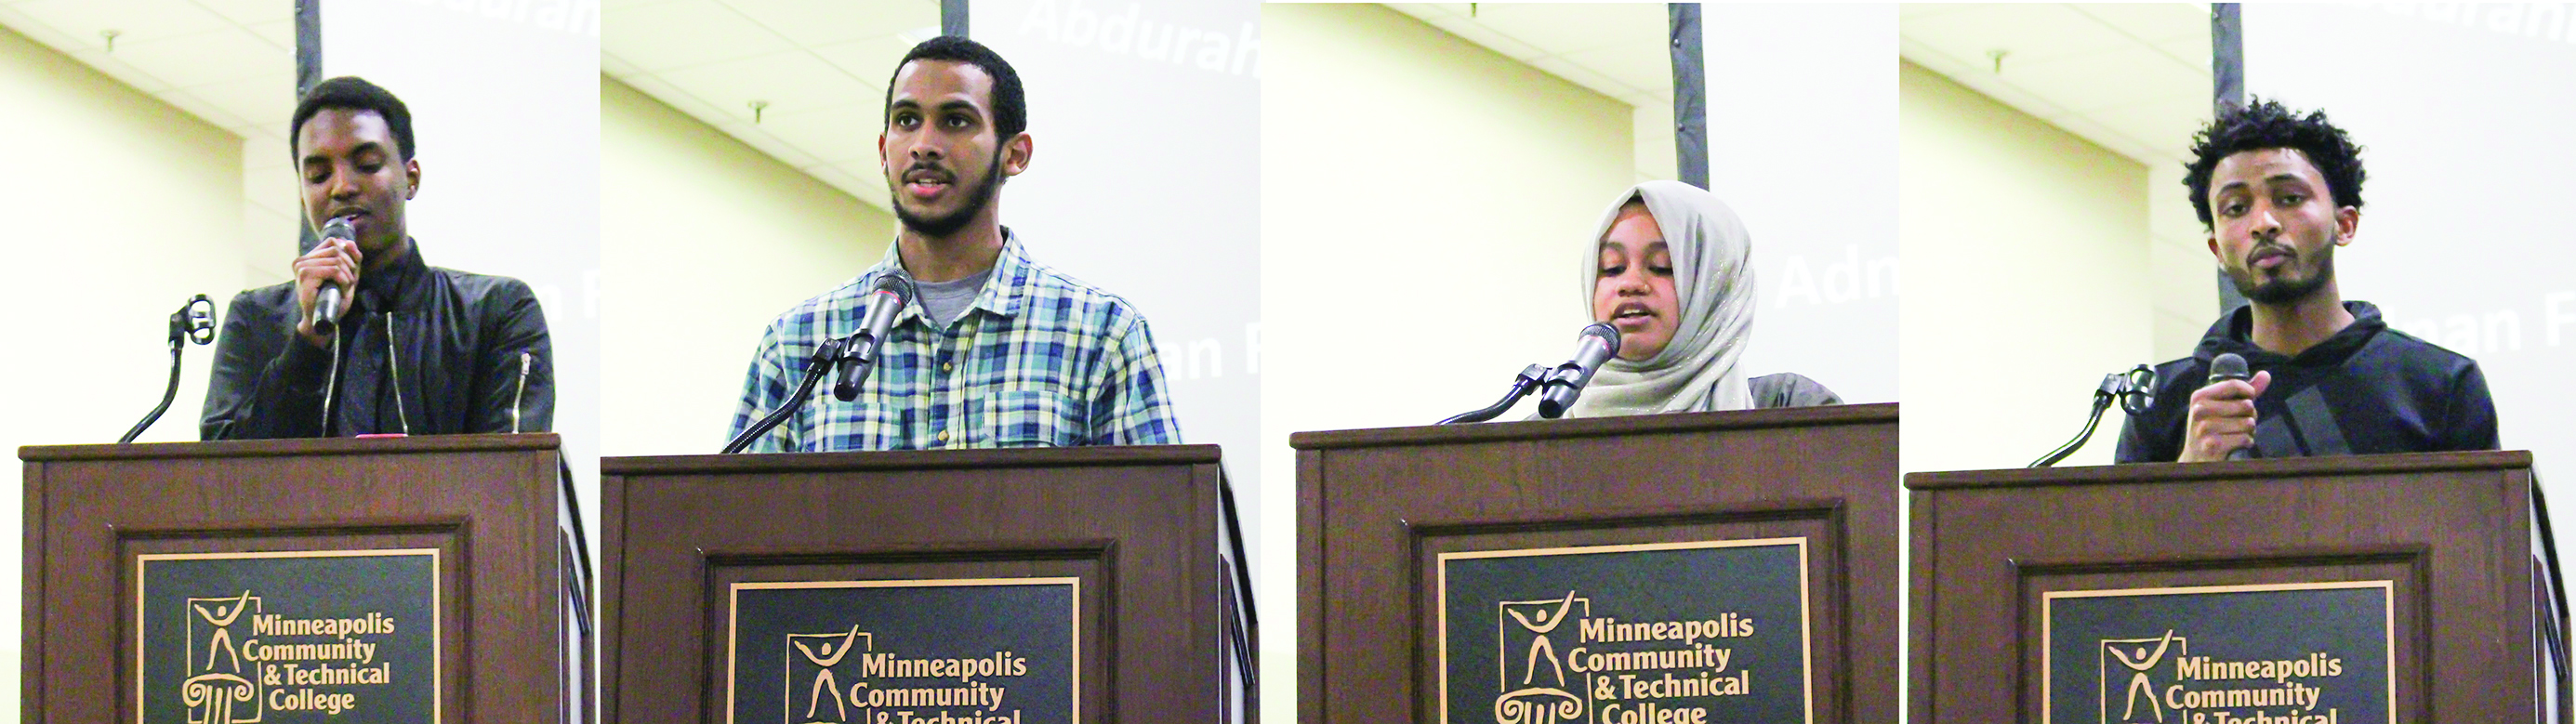 MSA celebrates Malcolm X and educates community on Islamophobia & Mass Incarceration